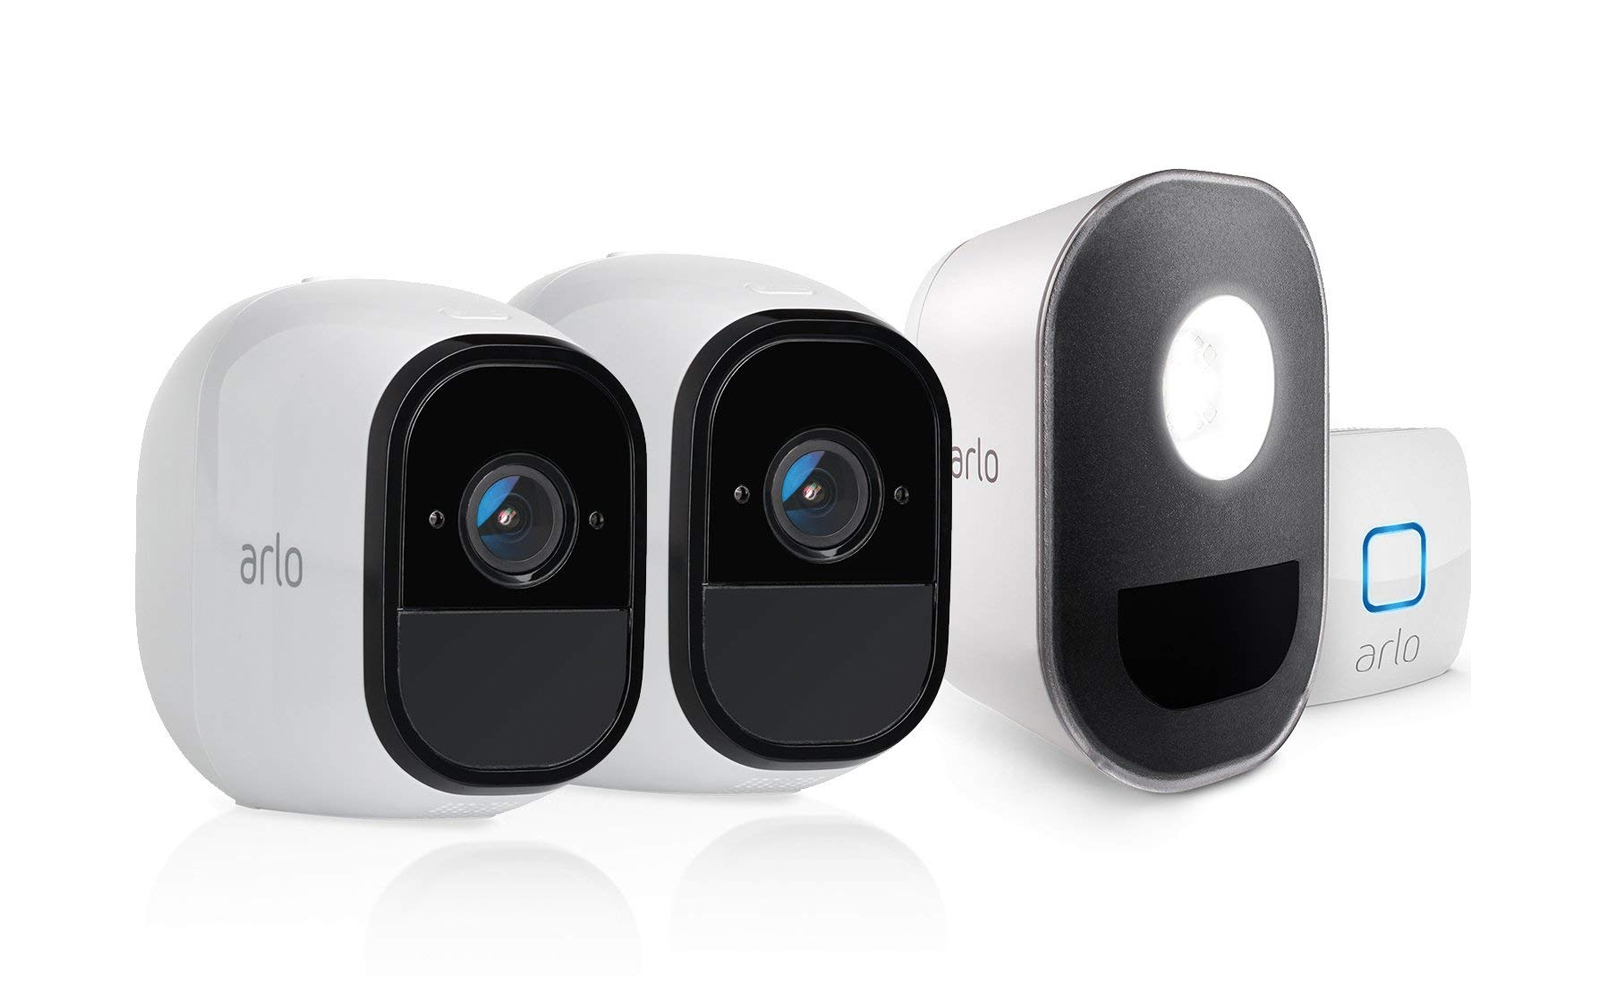 The Best Home Security Cameras on Amazon